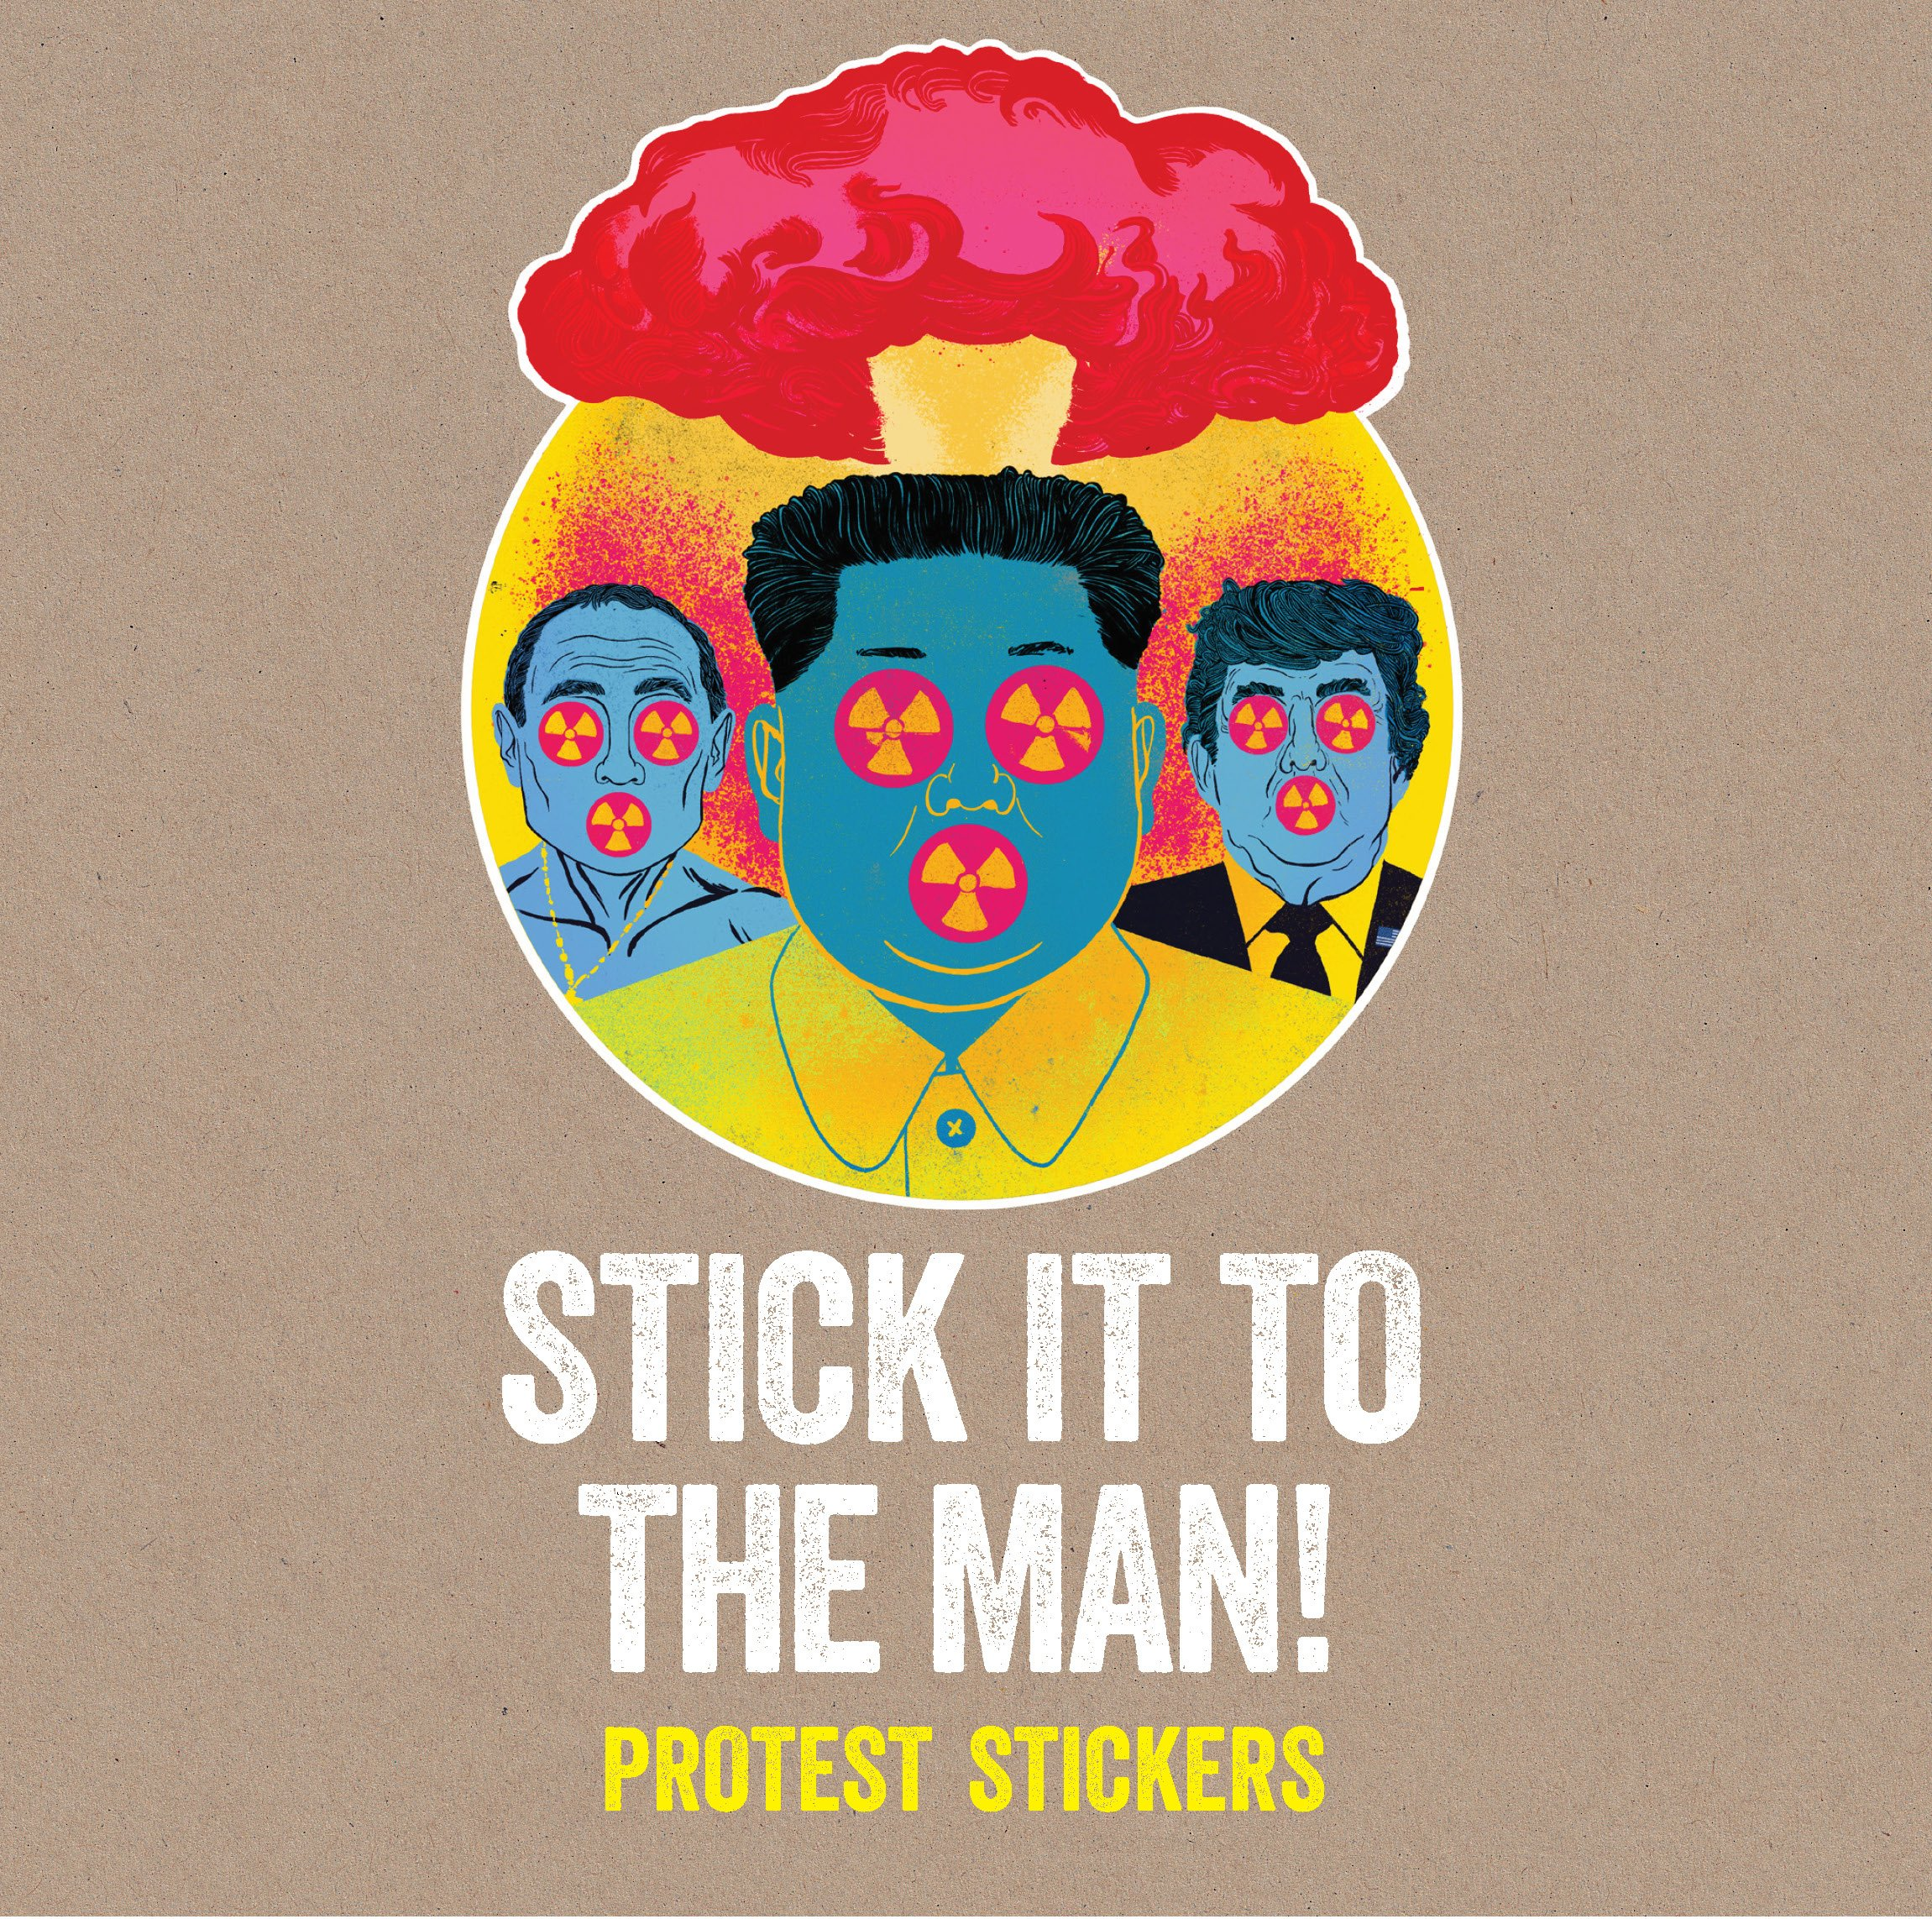 Stick it to the man! : Protest stickers